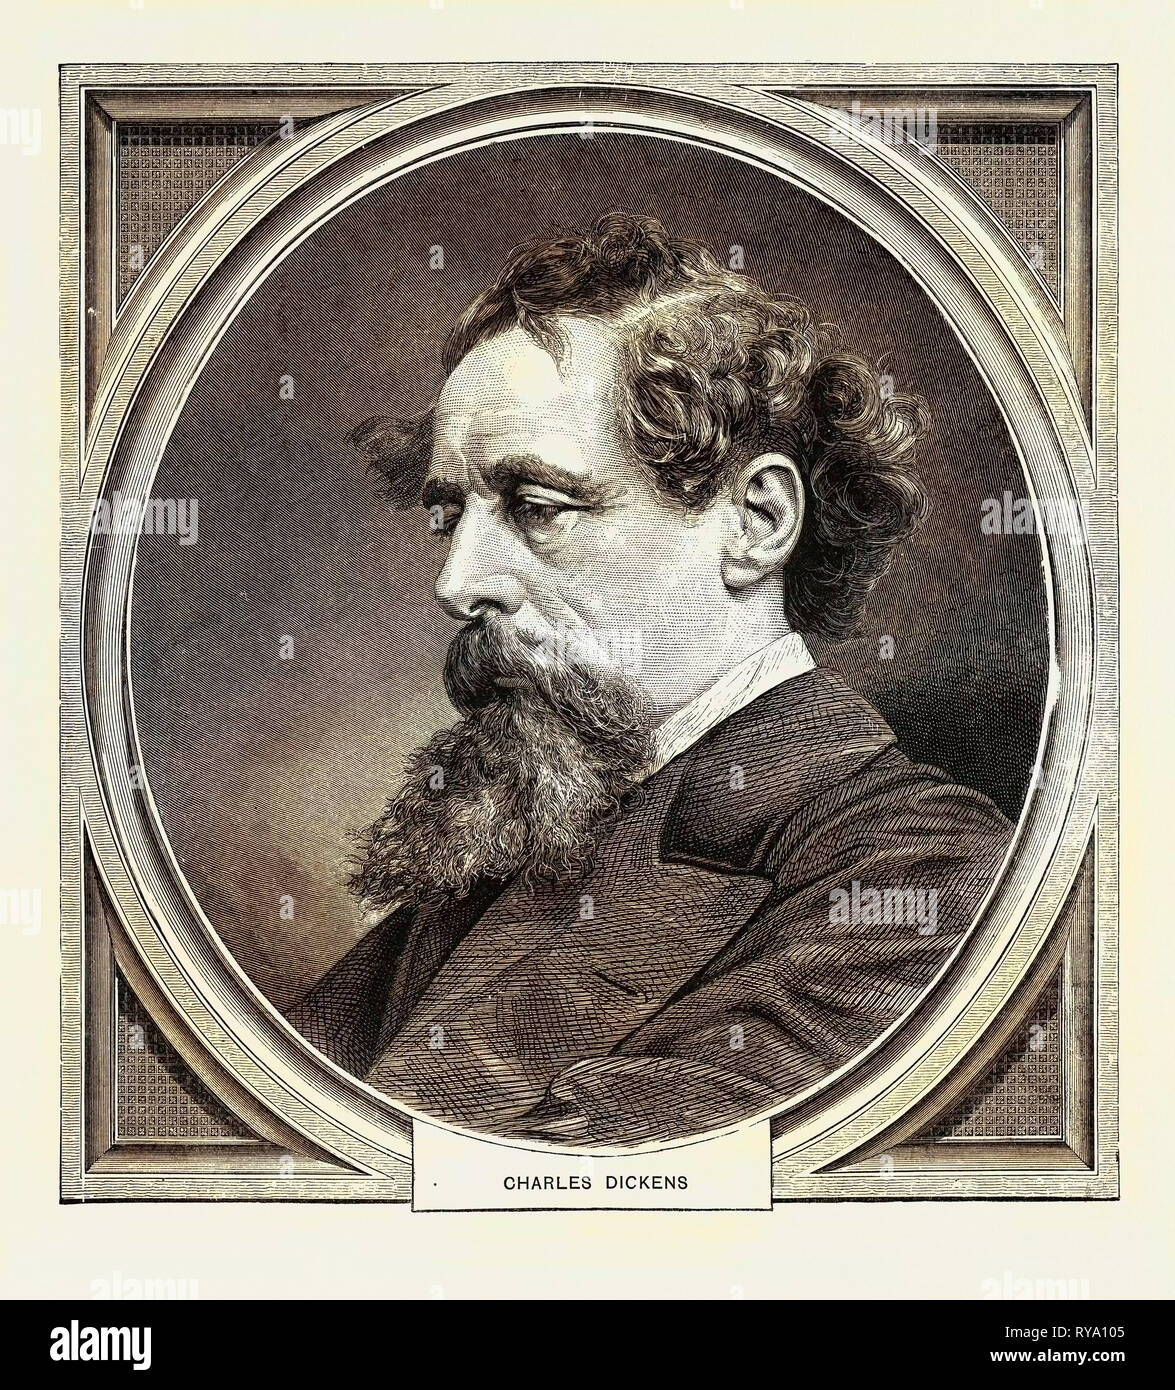 Charles Dickens, Born at Portsmouth, 7 February, 1812, Died at Gad's Hill, Kent, 9 June, 1870 Stock Photo